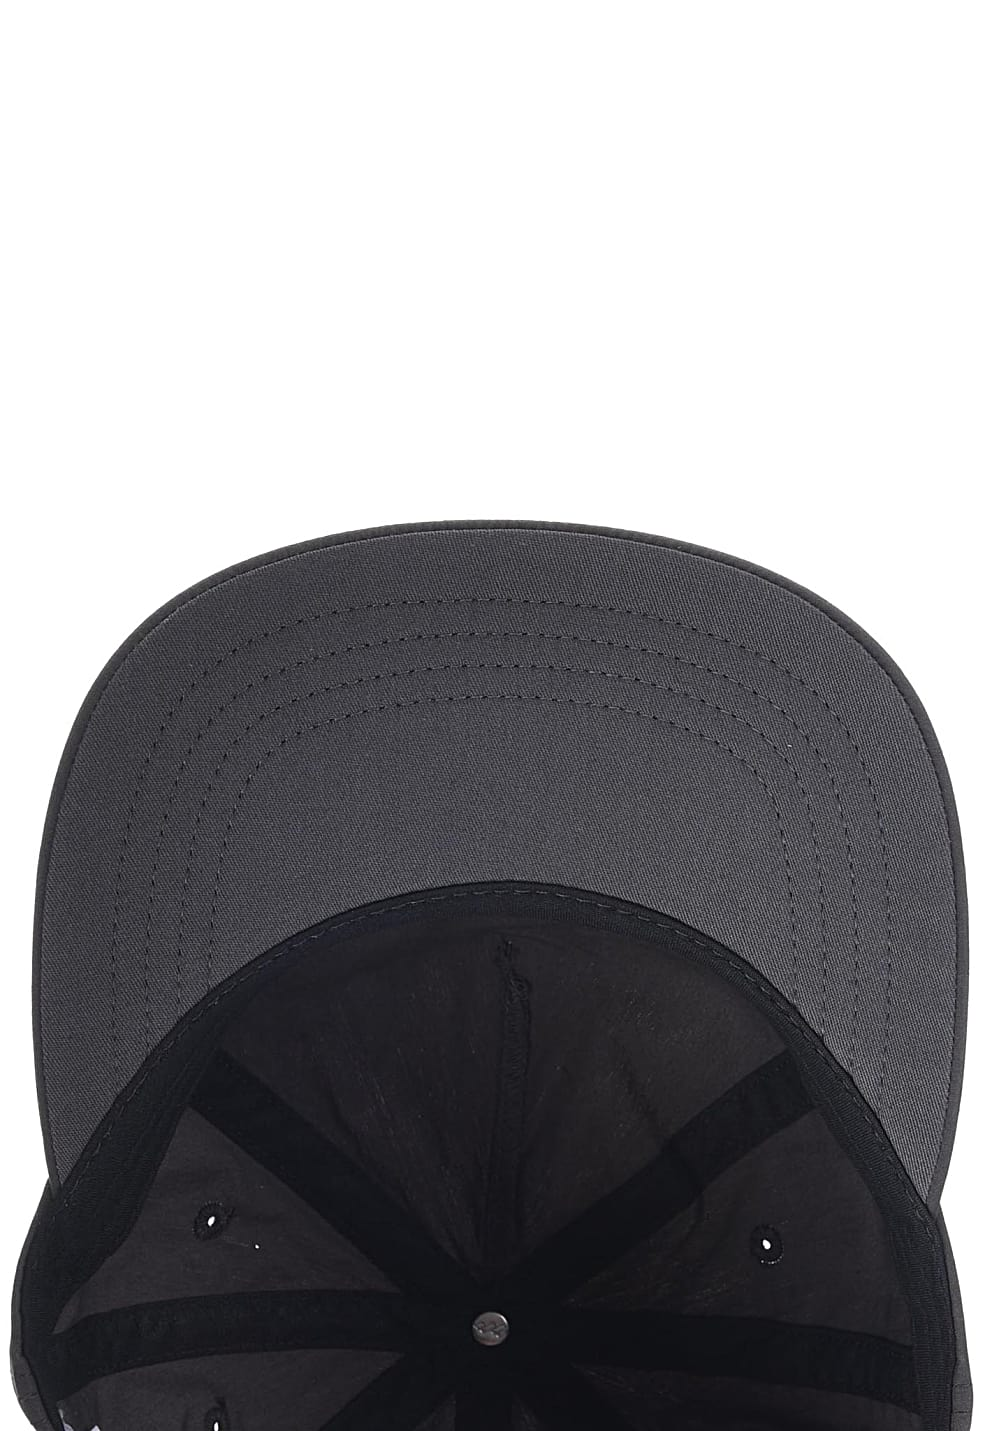 59ee32e2ec6 Previous. Next. This product is currently out of stock. carhartt WIP.  Mountain - Cap